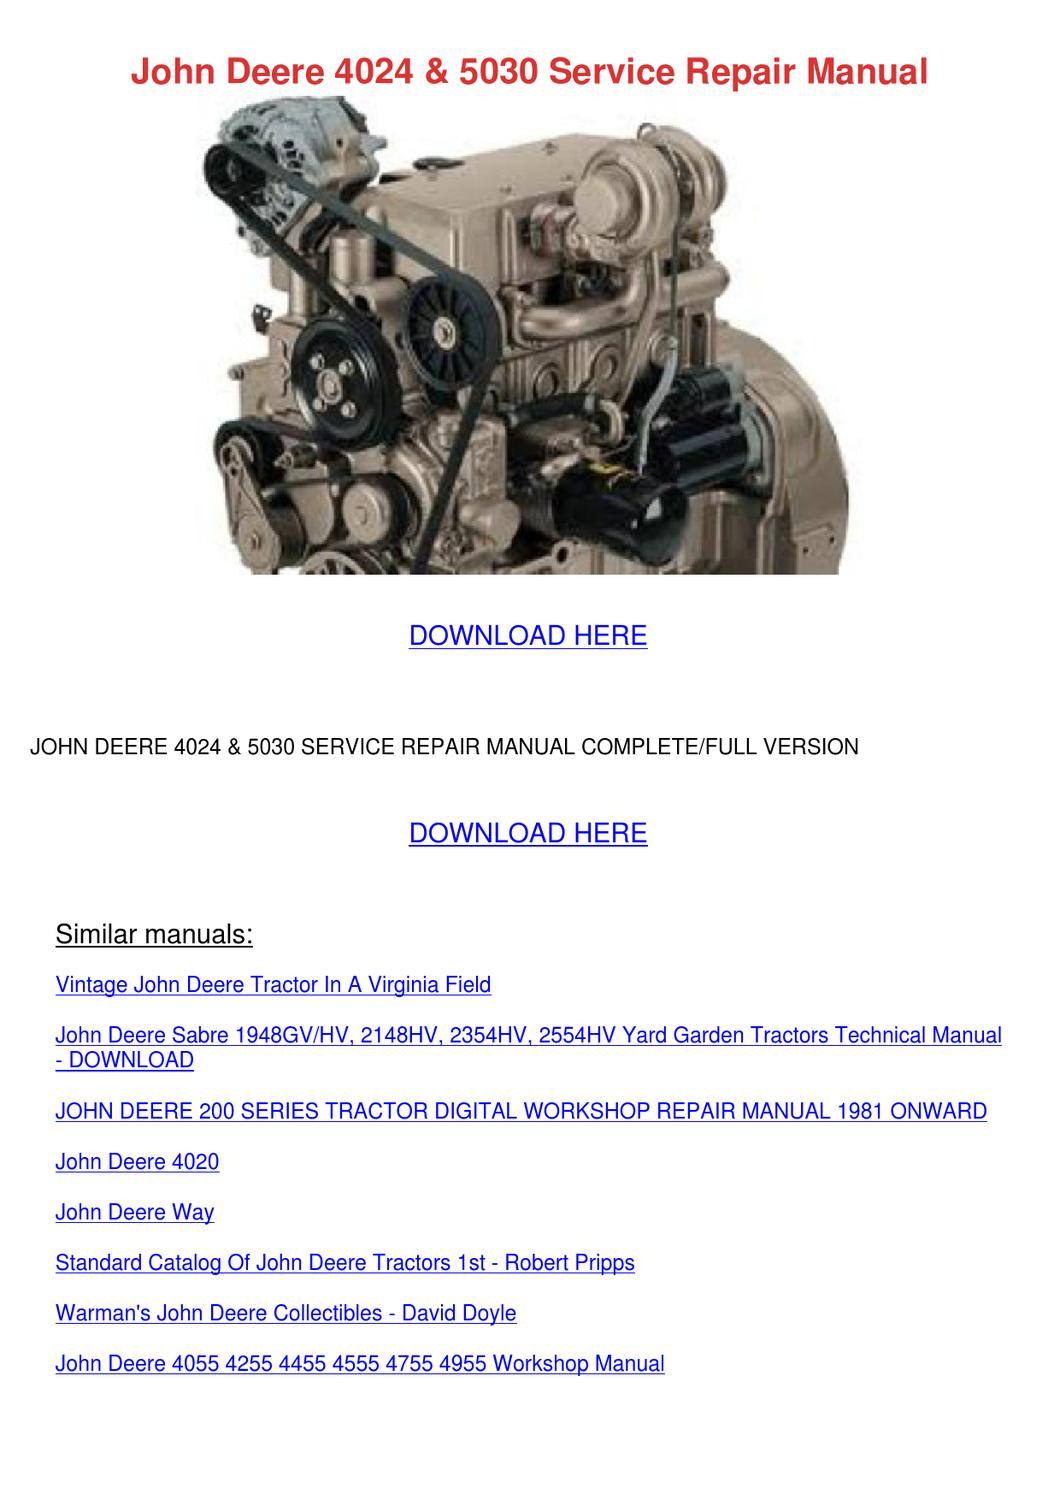 John Deere 4024 Engine Manual